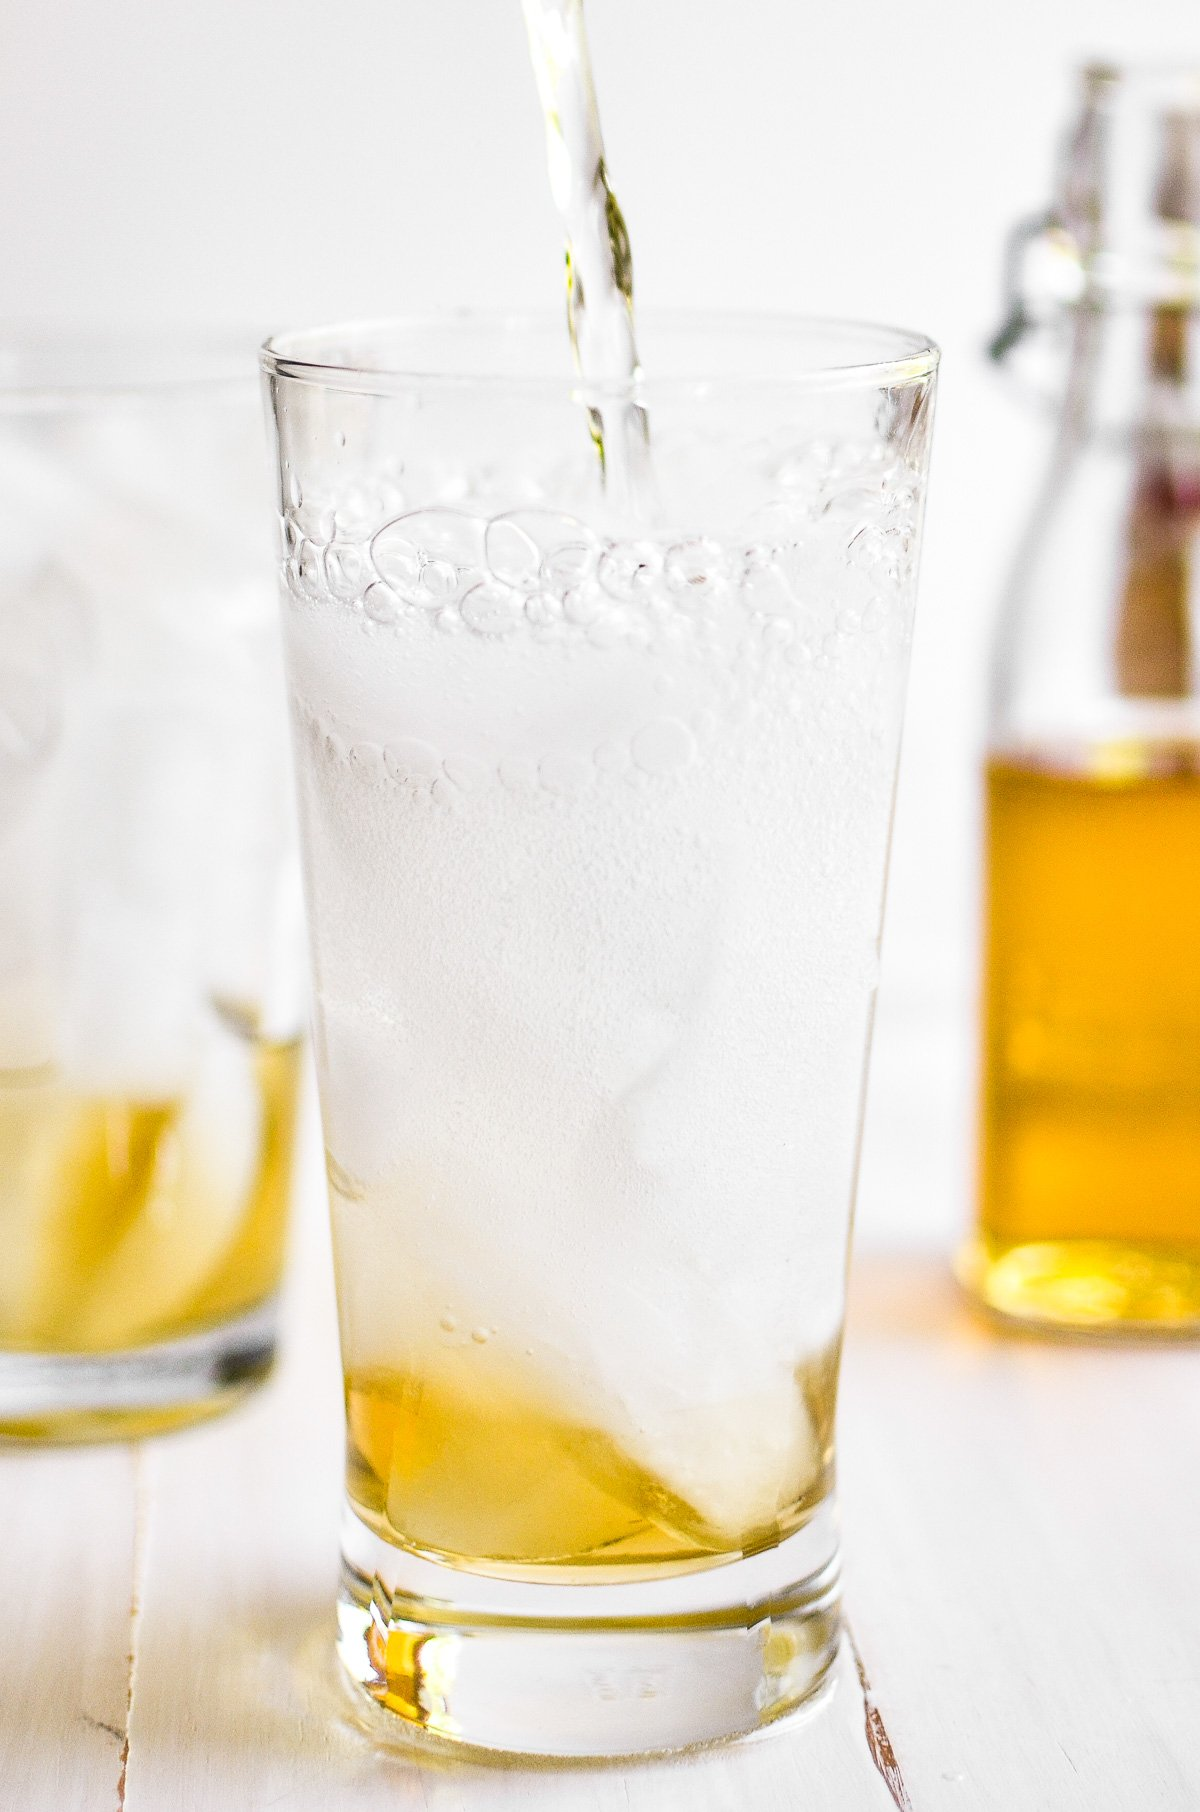 pouring seltzer water over vanilla syrup to make homemade cream soda